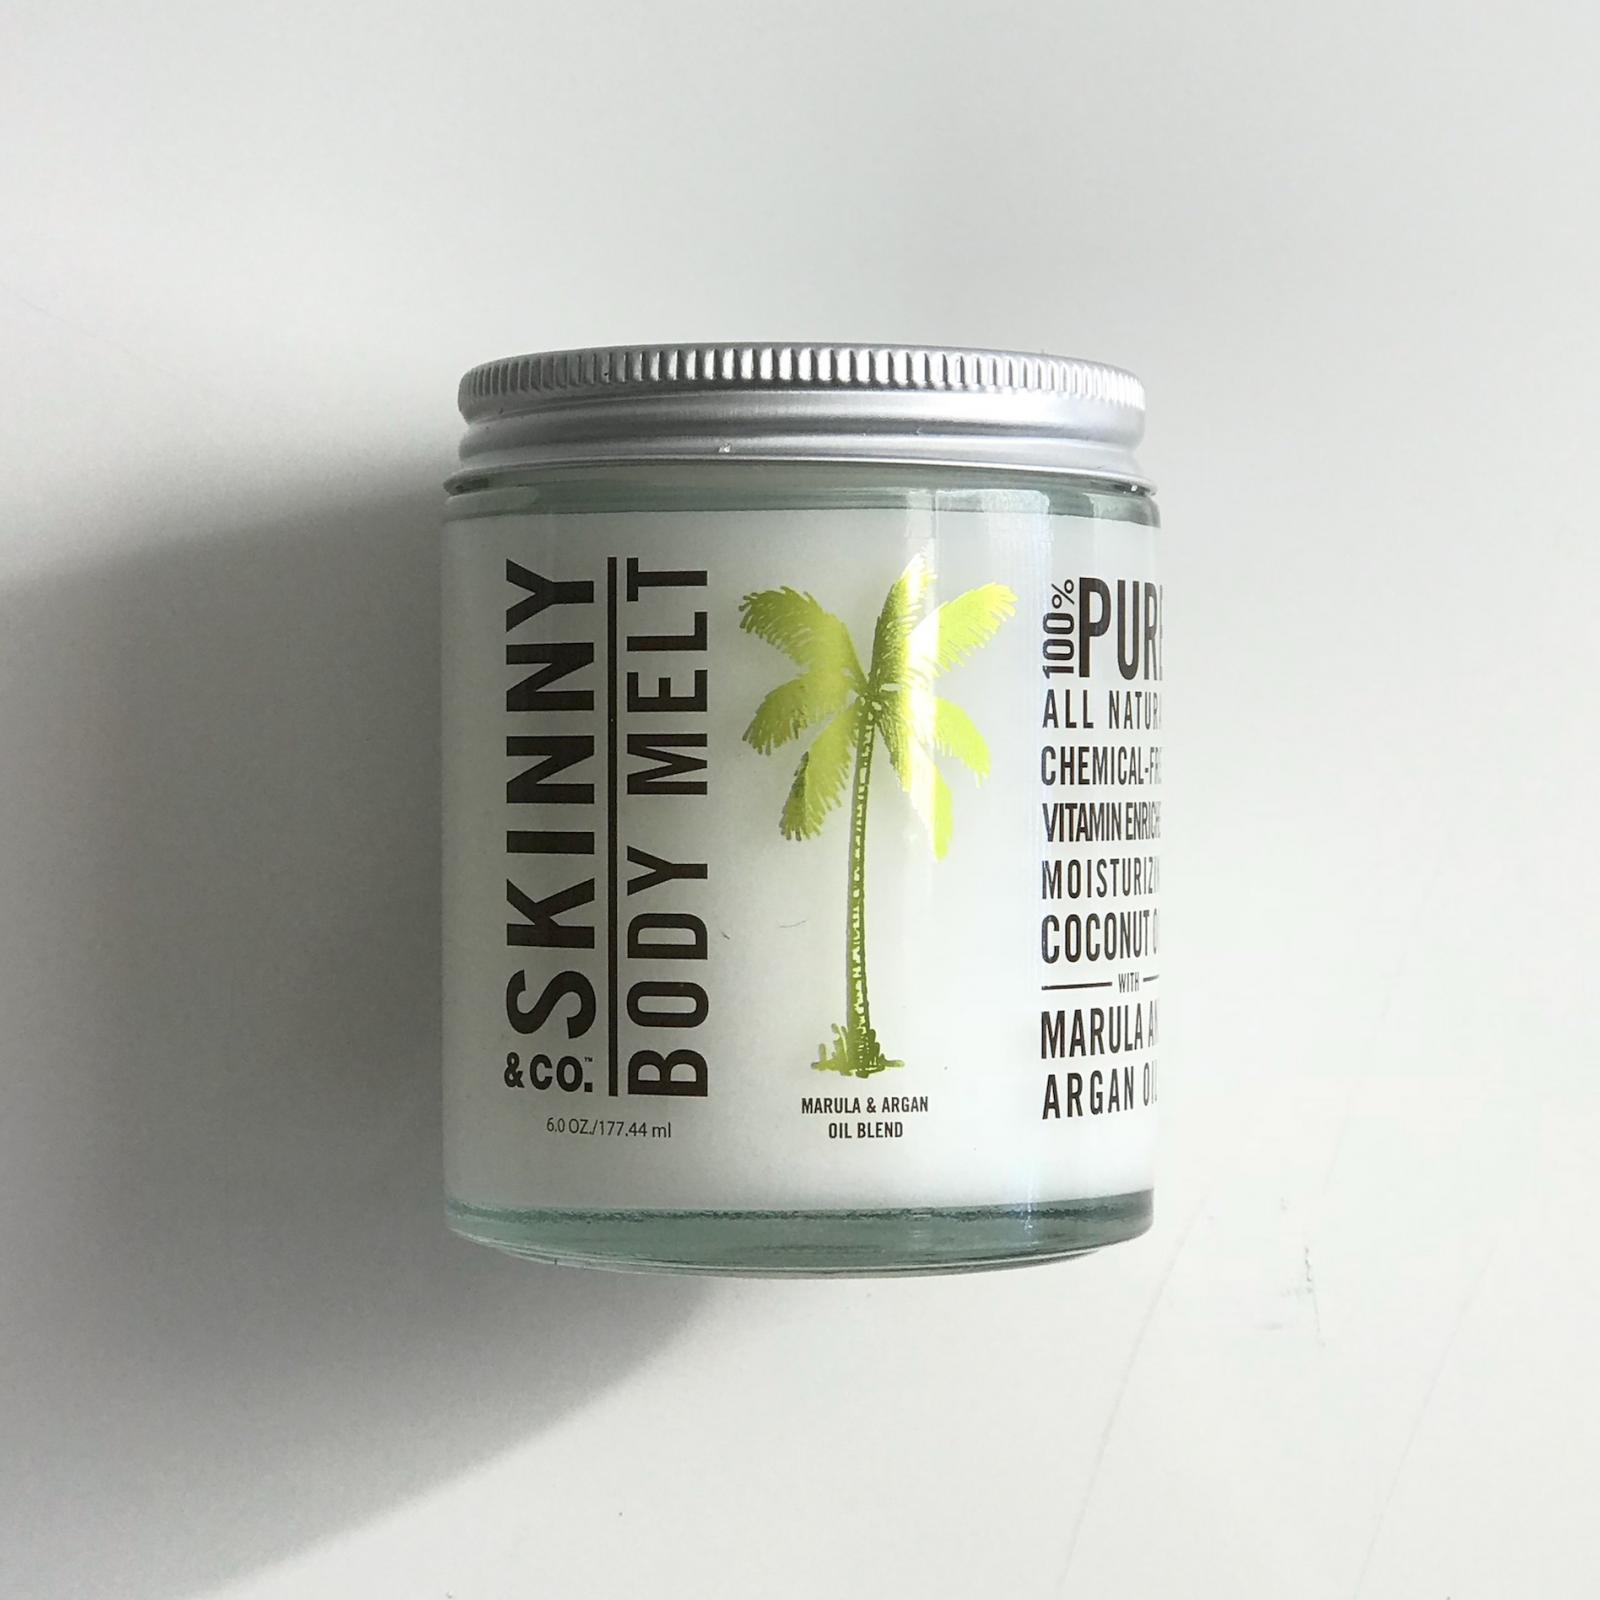 Skinny & Co Body Melt Marula Argan